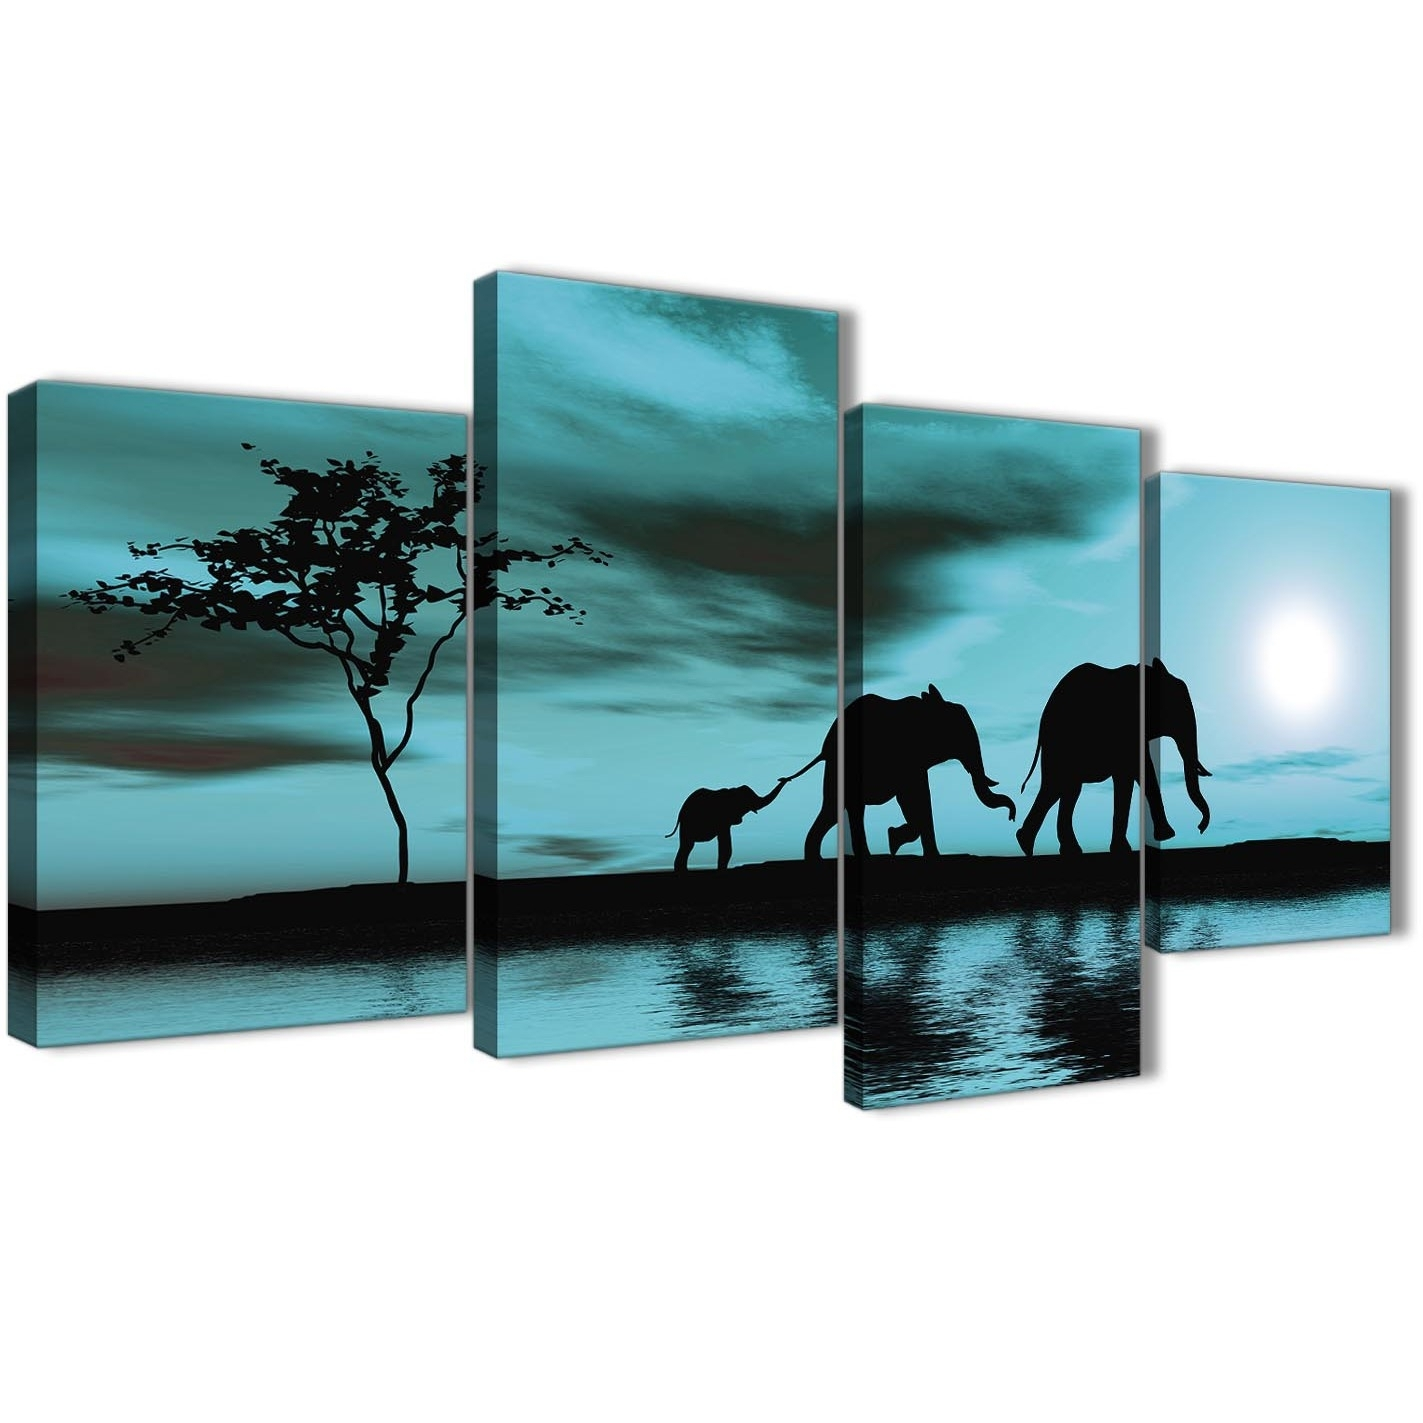 Large Teal African Sunset Elephants Canvas Wall Art Print - Multi 4 with Oversized Teal Canvas Wall Art (Image 13 of 20)